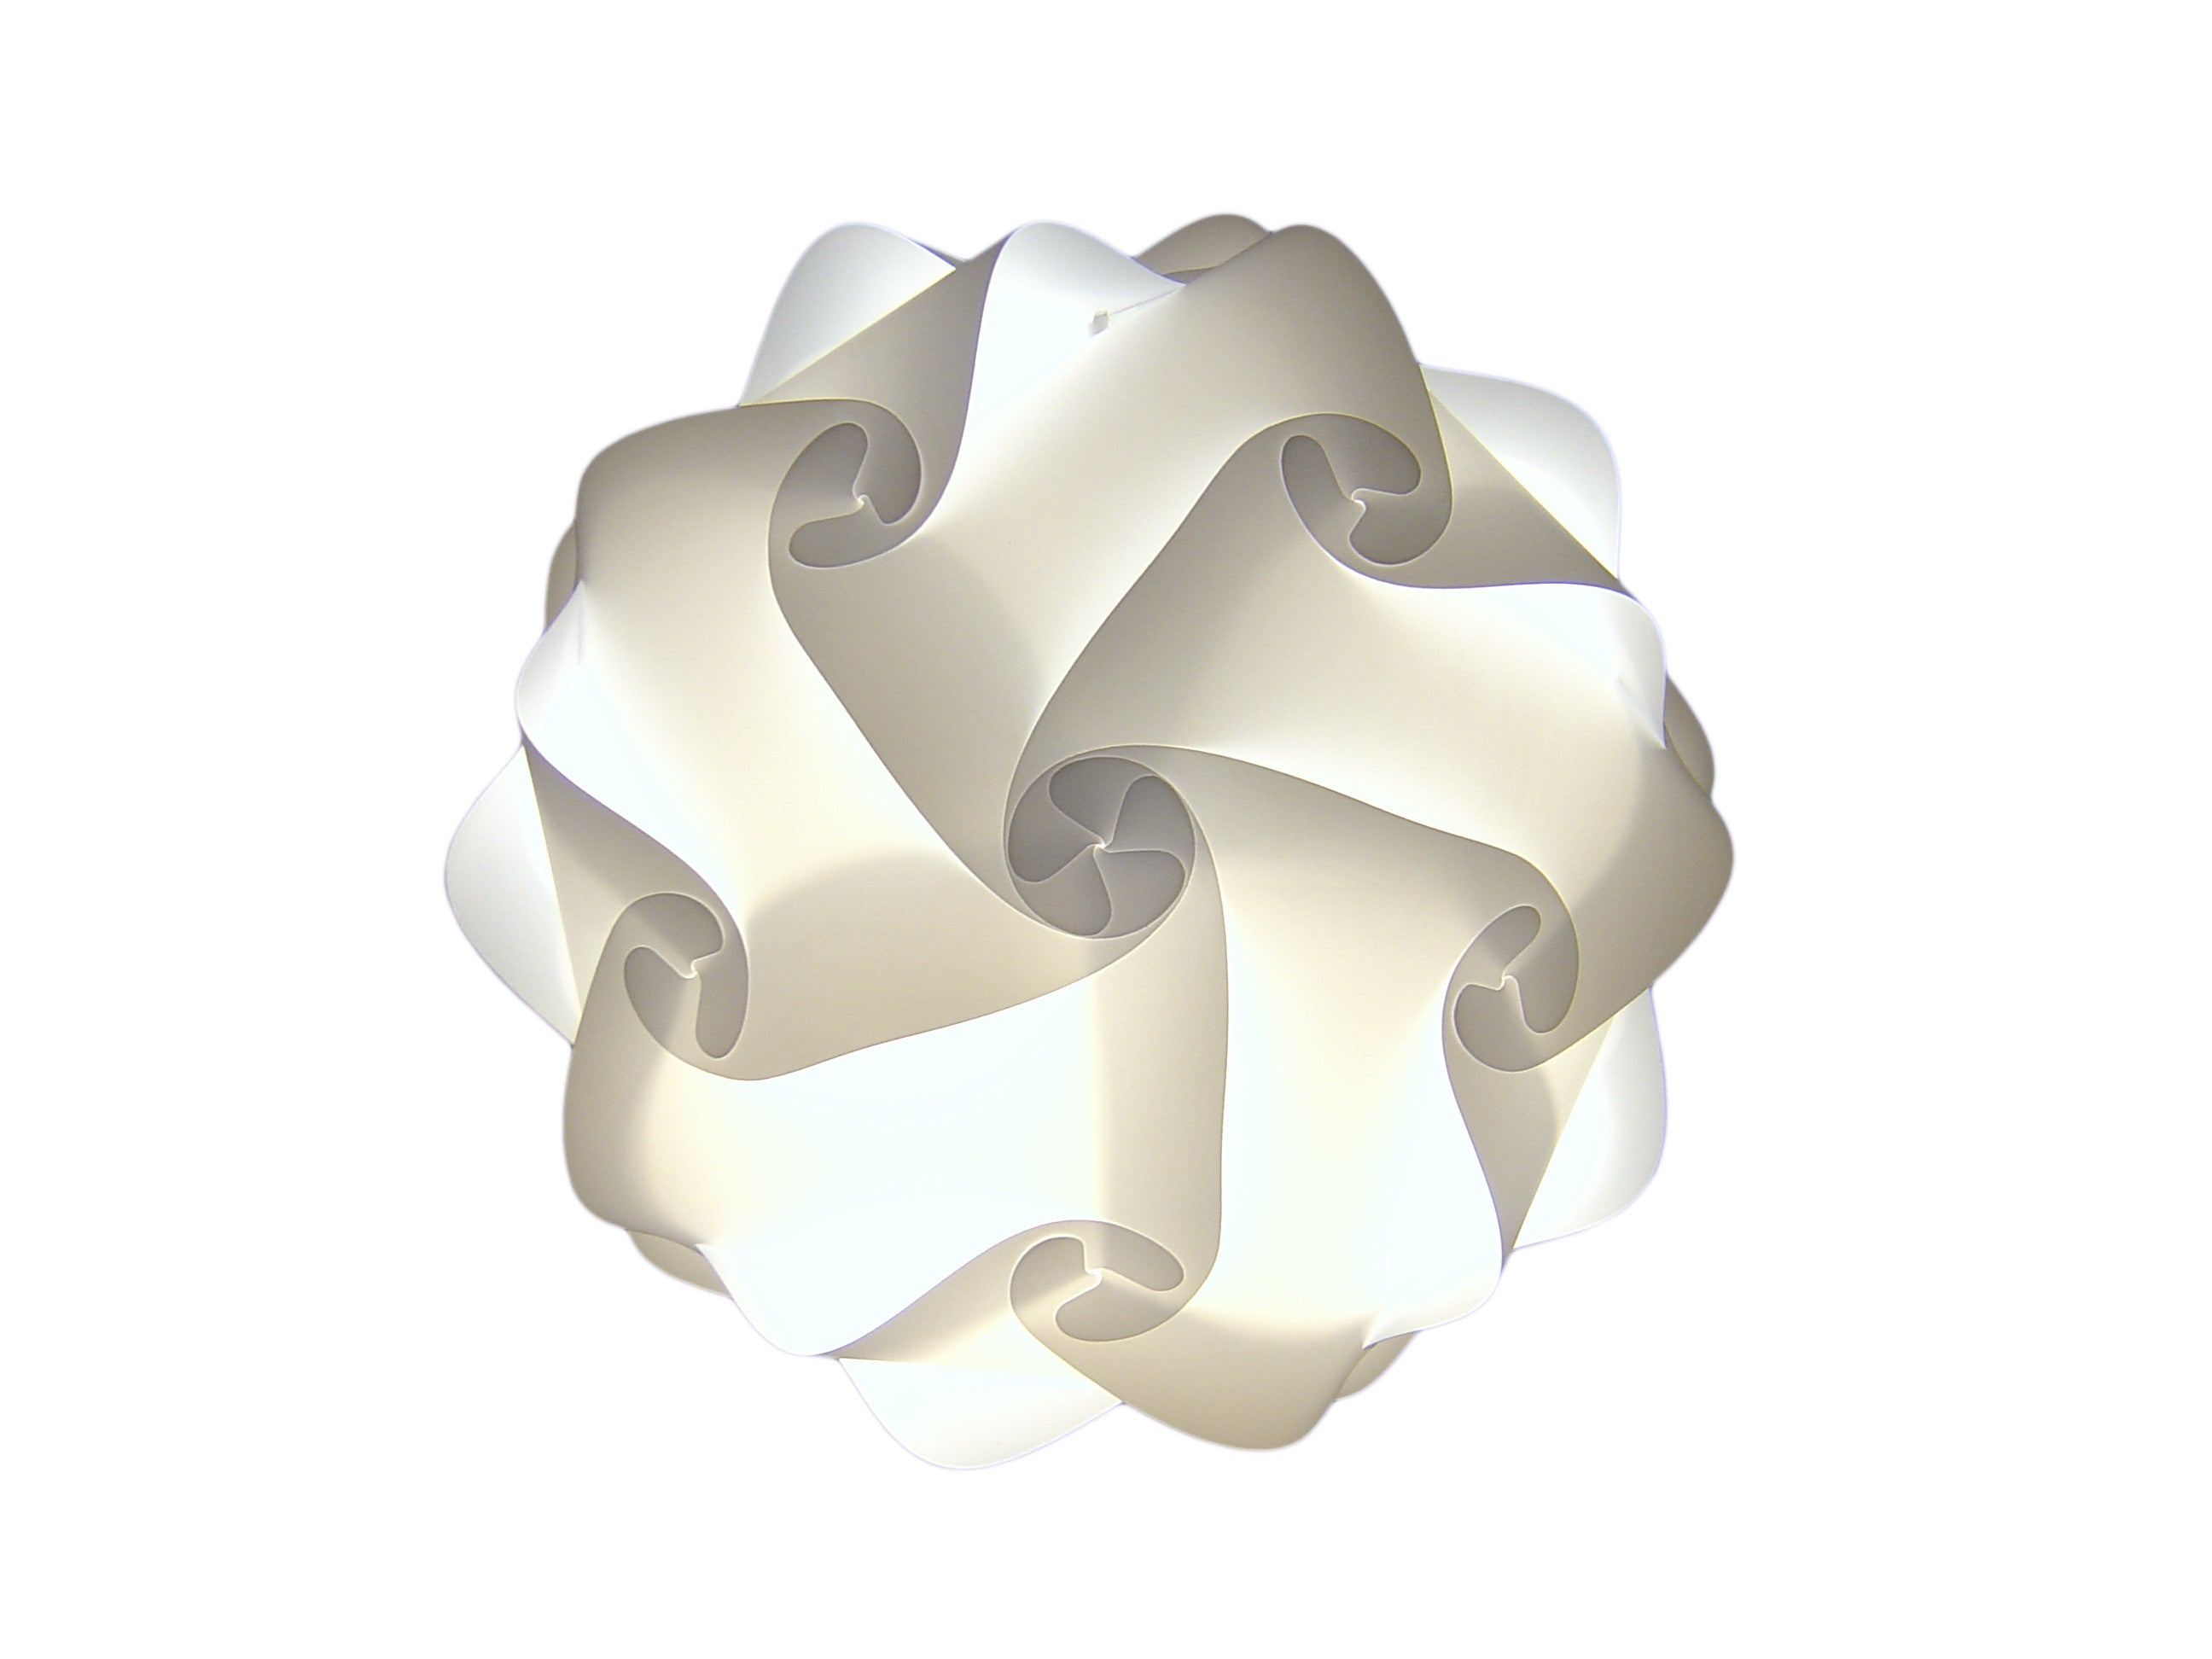 Smartylamps - OLAF - White Ceiling Pendant Lampshade  Smart Deco Homeware Lighting and Art by Jacqueline hammond